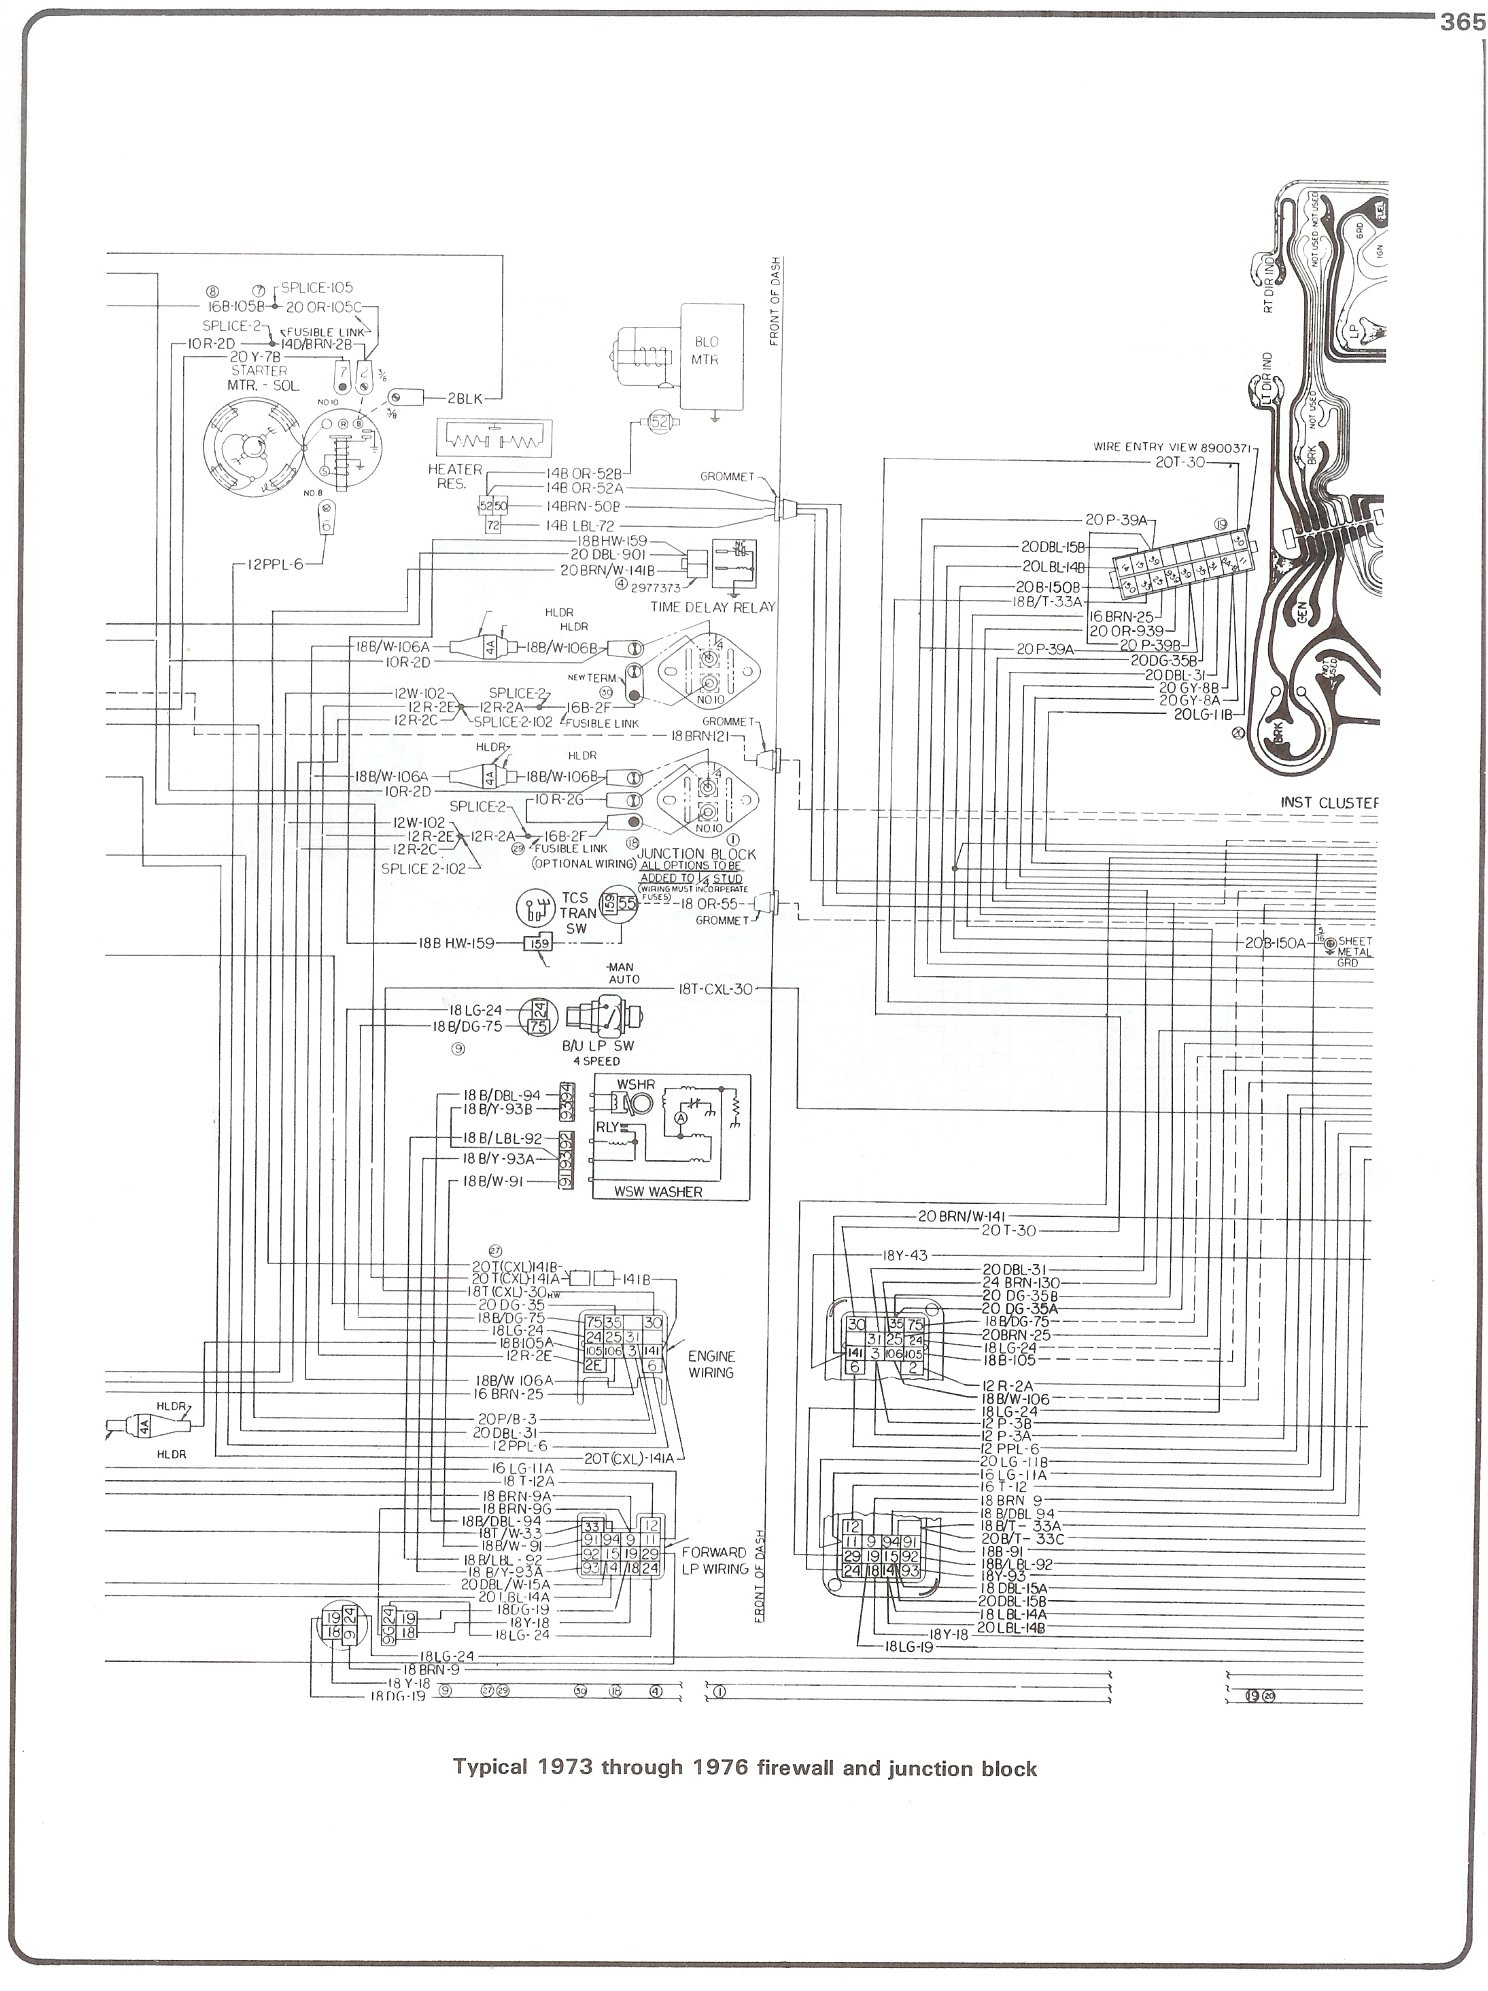 Chevy Truck Wiring Diagram Besides 1966 Mustang Dash Wiring Diagram